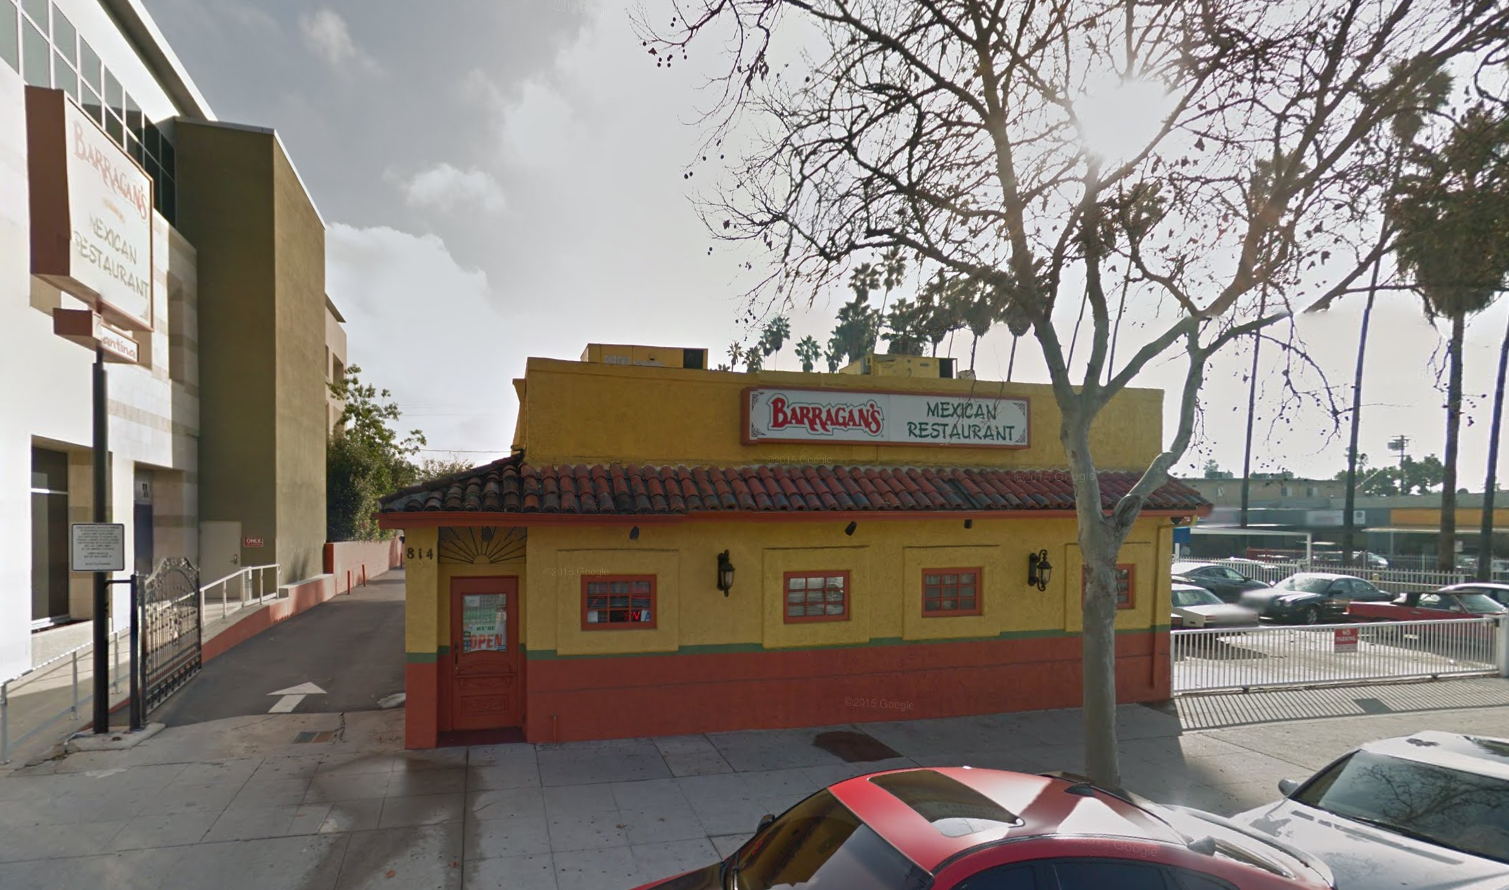 Barragan's Mexican restaurant, yellow building outside